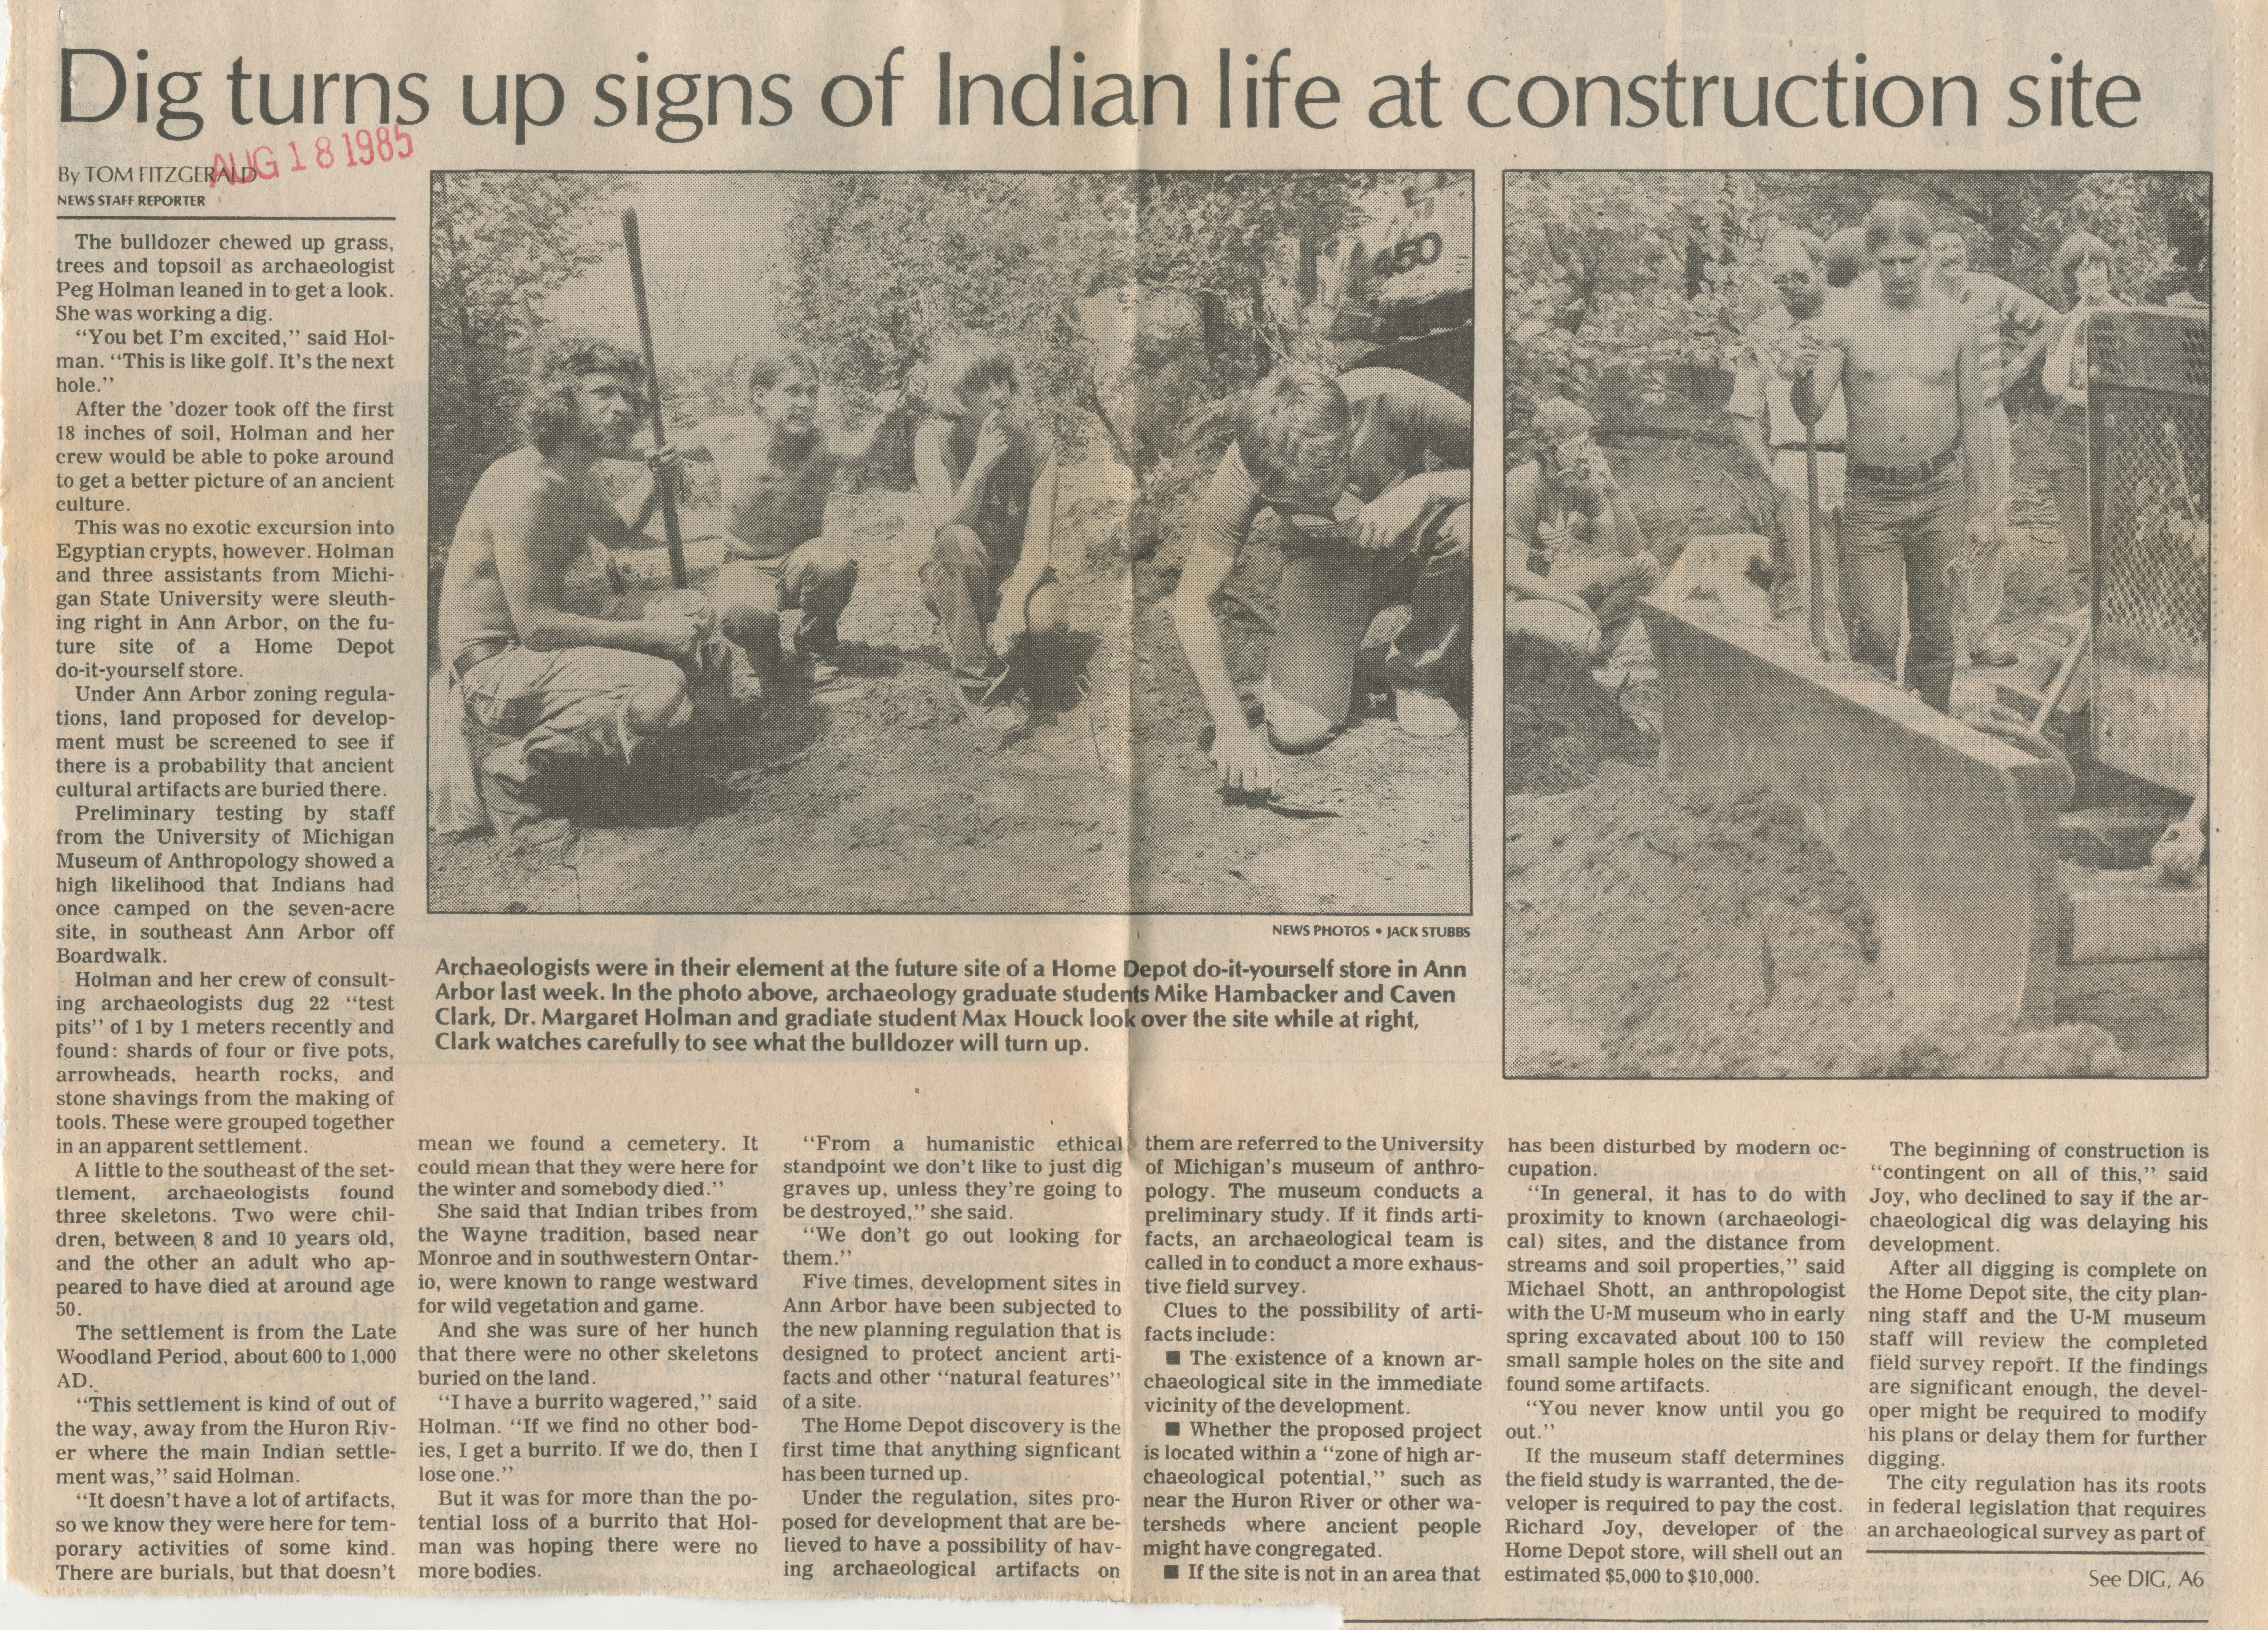 Dig Turns Up Signs Of Indian Life At Construction Site  image